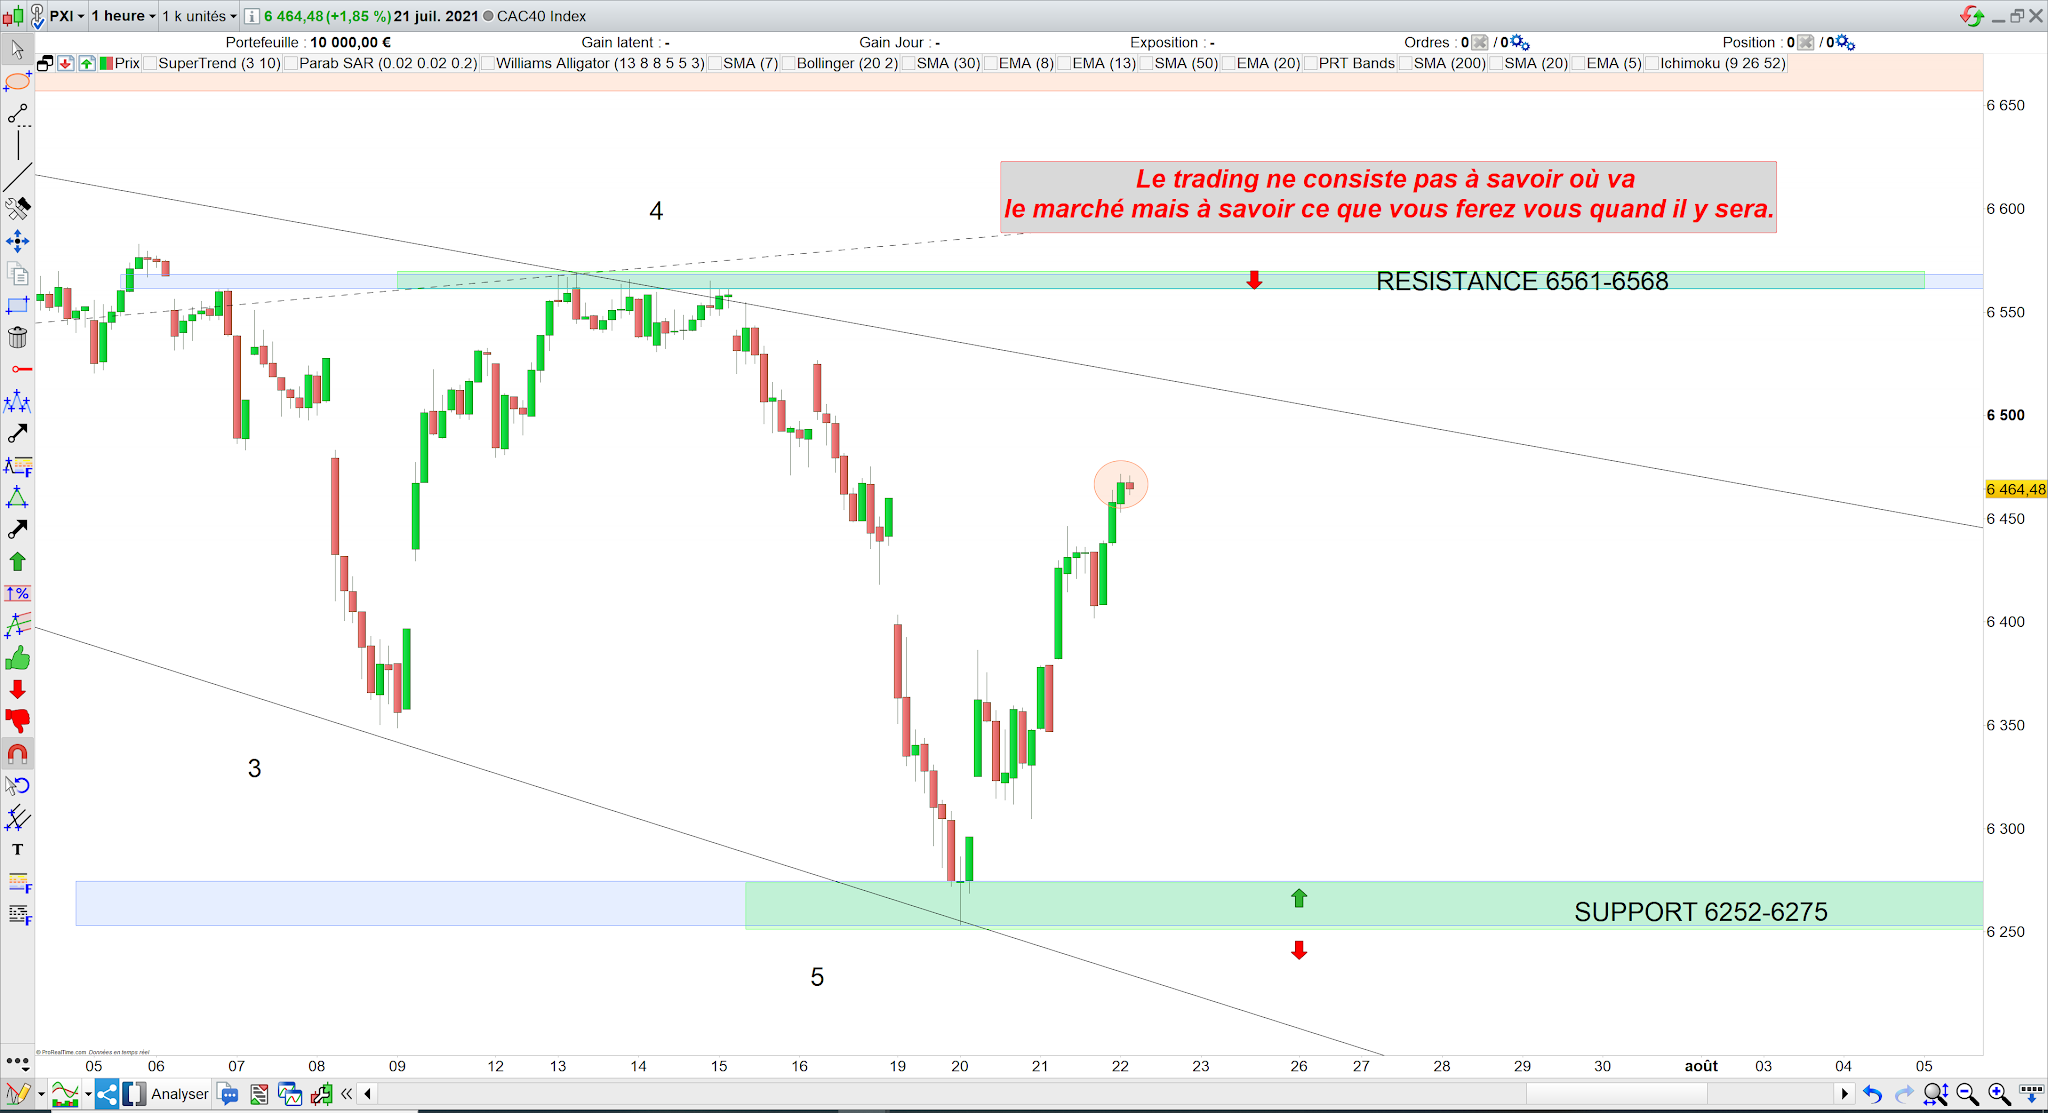 Trading cac40 22/07/21